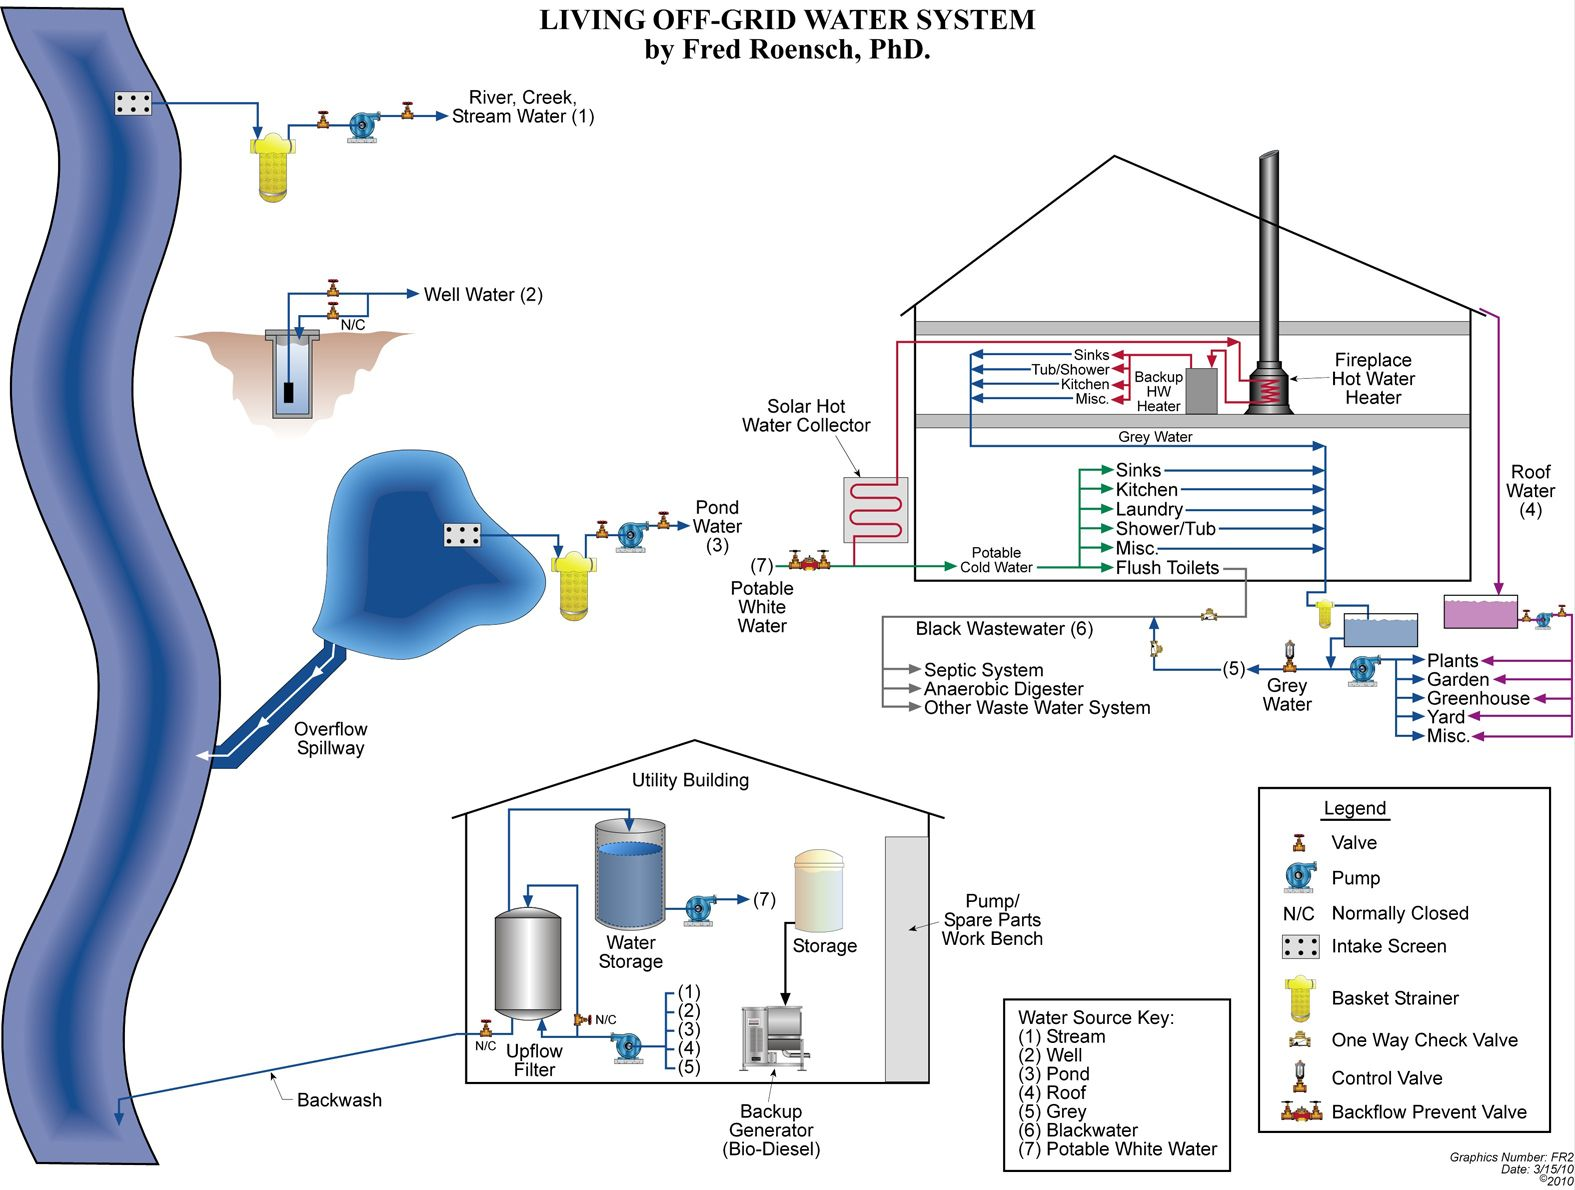 The Off Grid Water System Diagram By Fred Roensch   Living Off The Grid